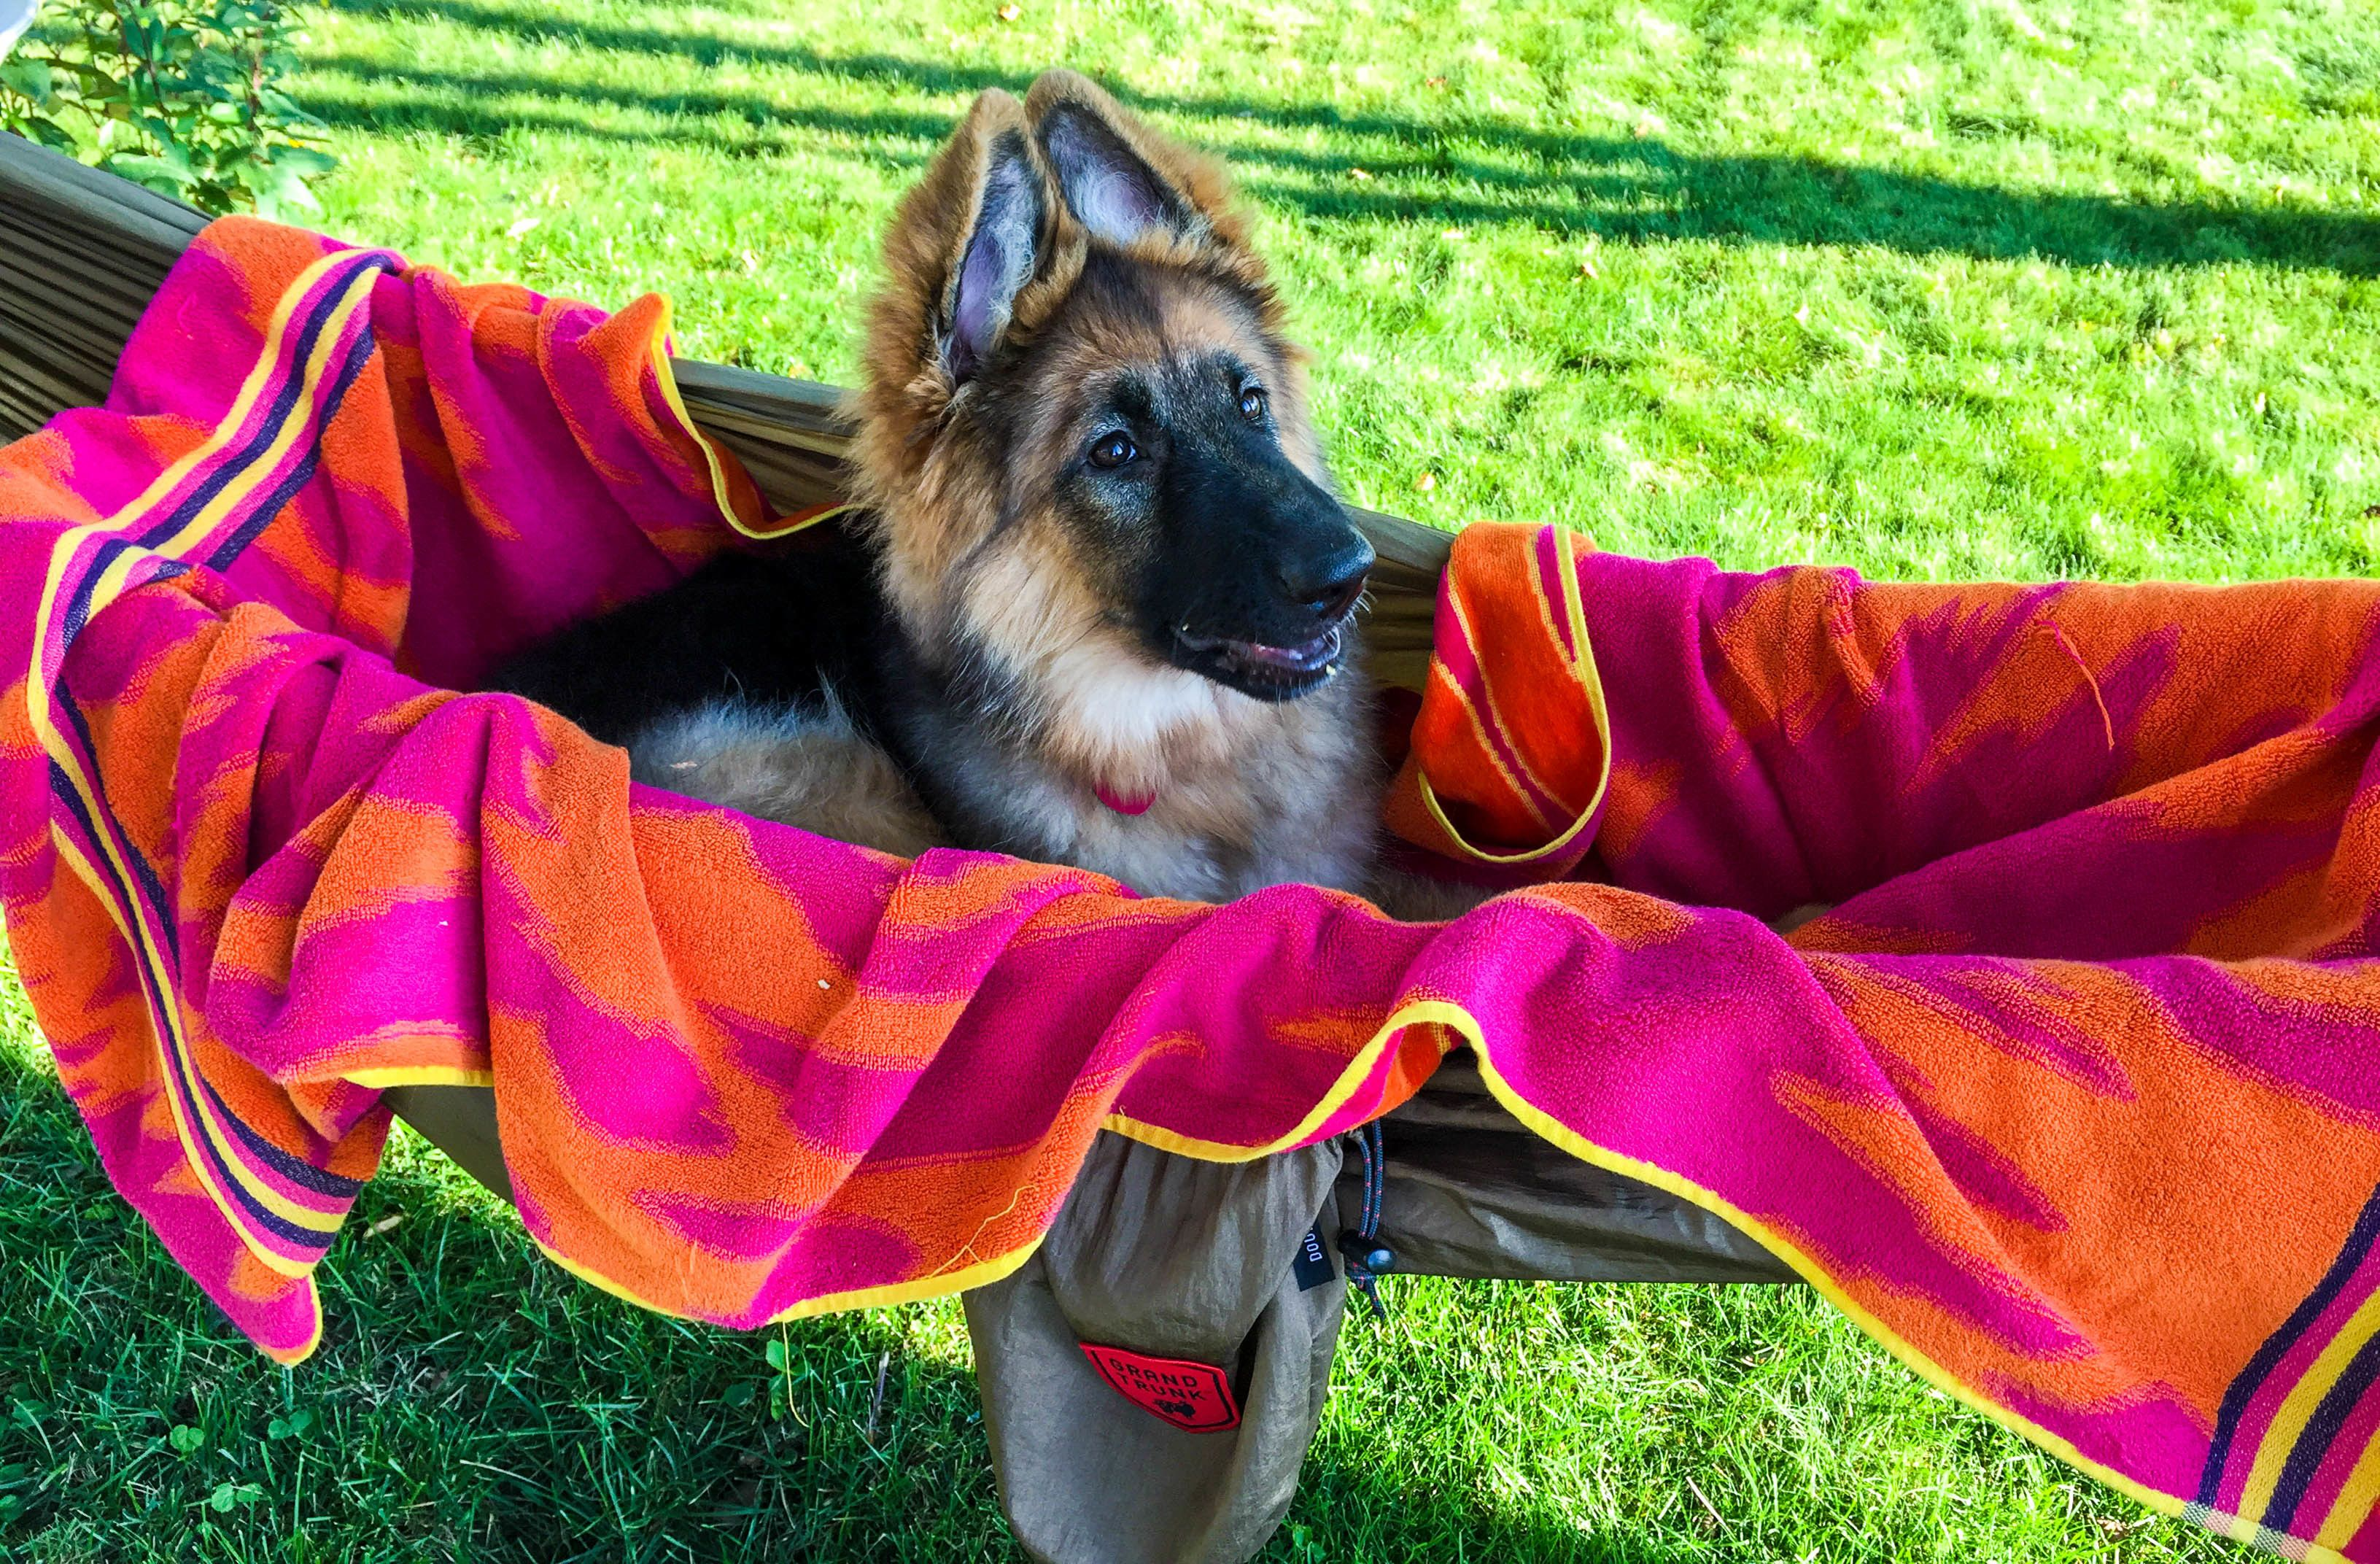 for we hammock dog first bushcraftadventuregmail adventure and olly his on at be attempt hammocker heading will hopefully soon until i wait an our after probably opie but darby winter hammocks com out author